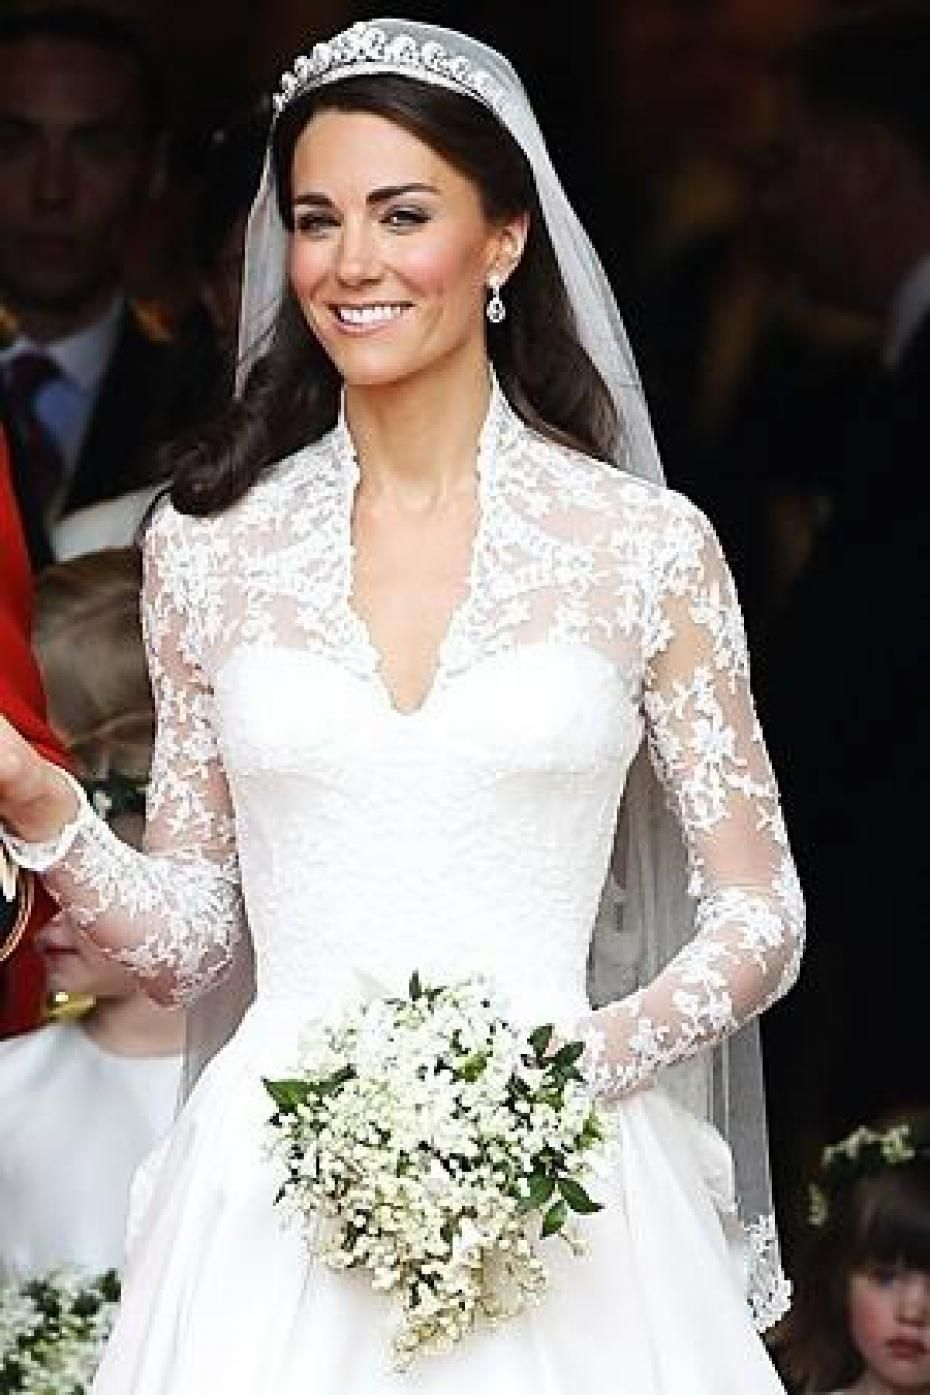 Kate Middleton\u0027s Wedding Flowers The Meaning of the Bouquet